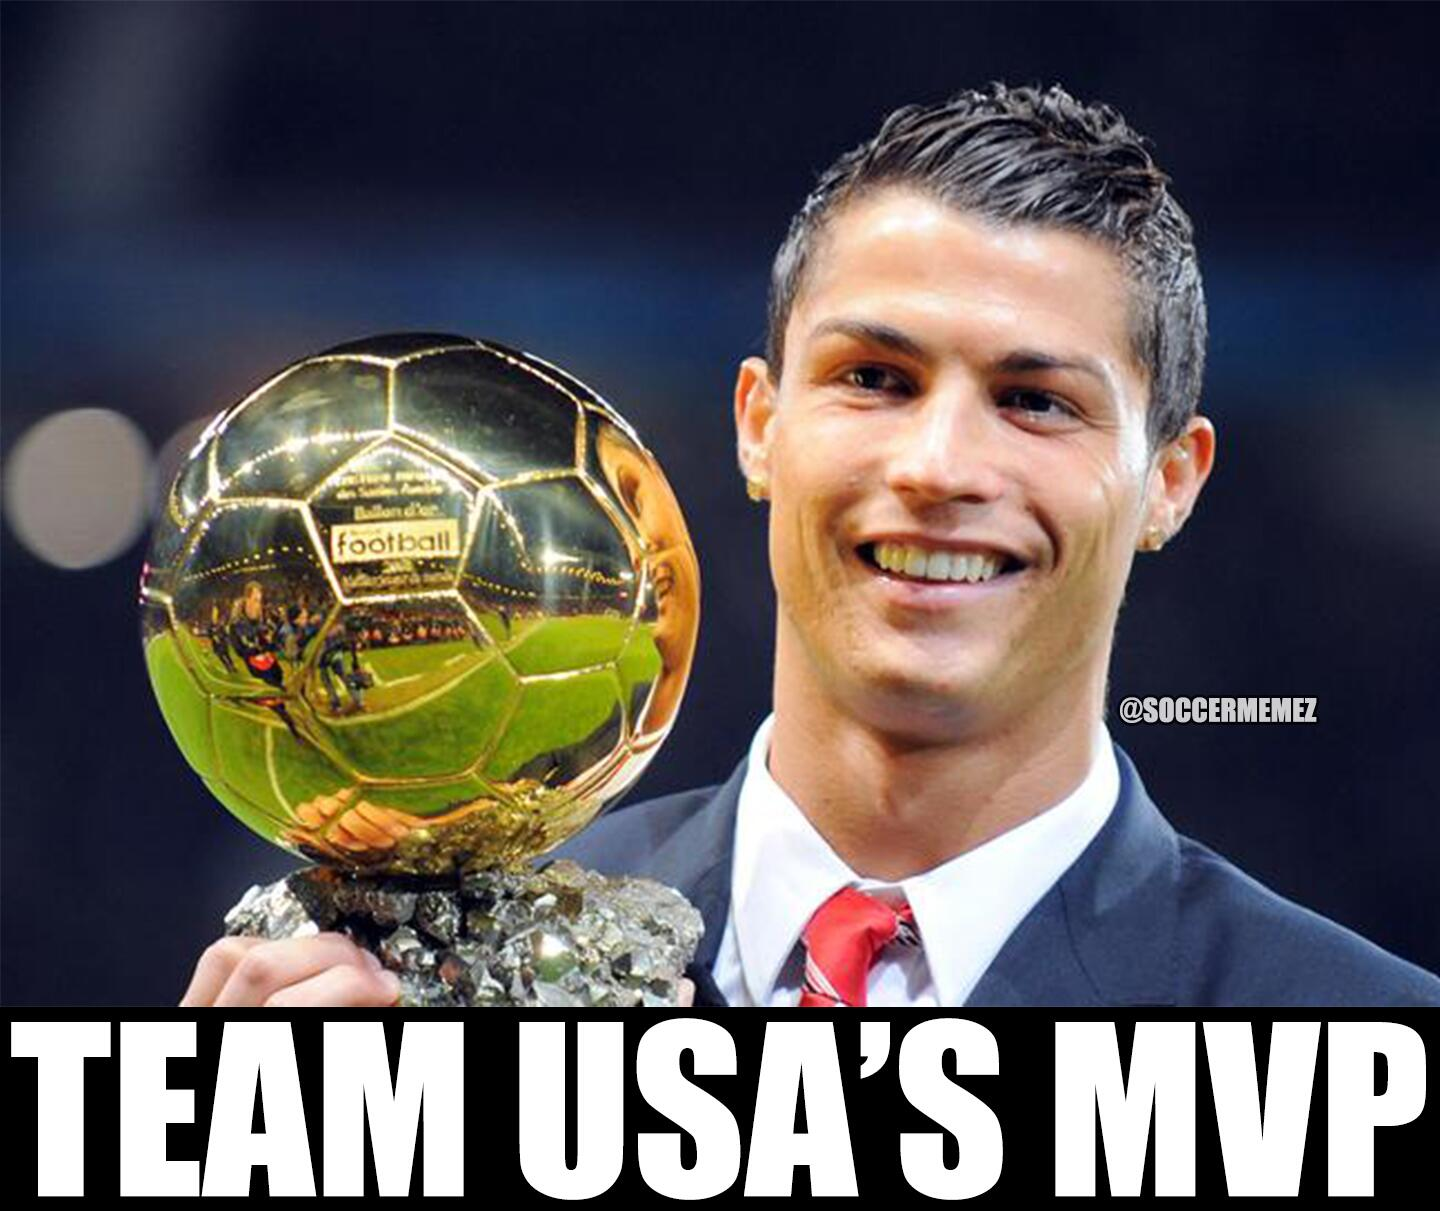 ทวิตเตอร์ / SoccerMemez: Team USA's MVP for today! ...